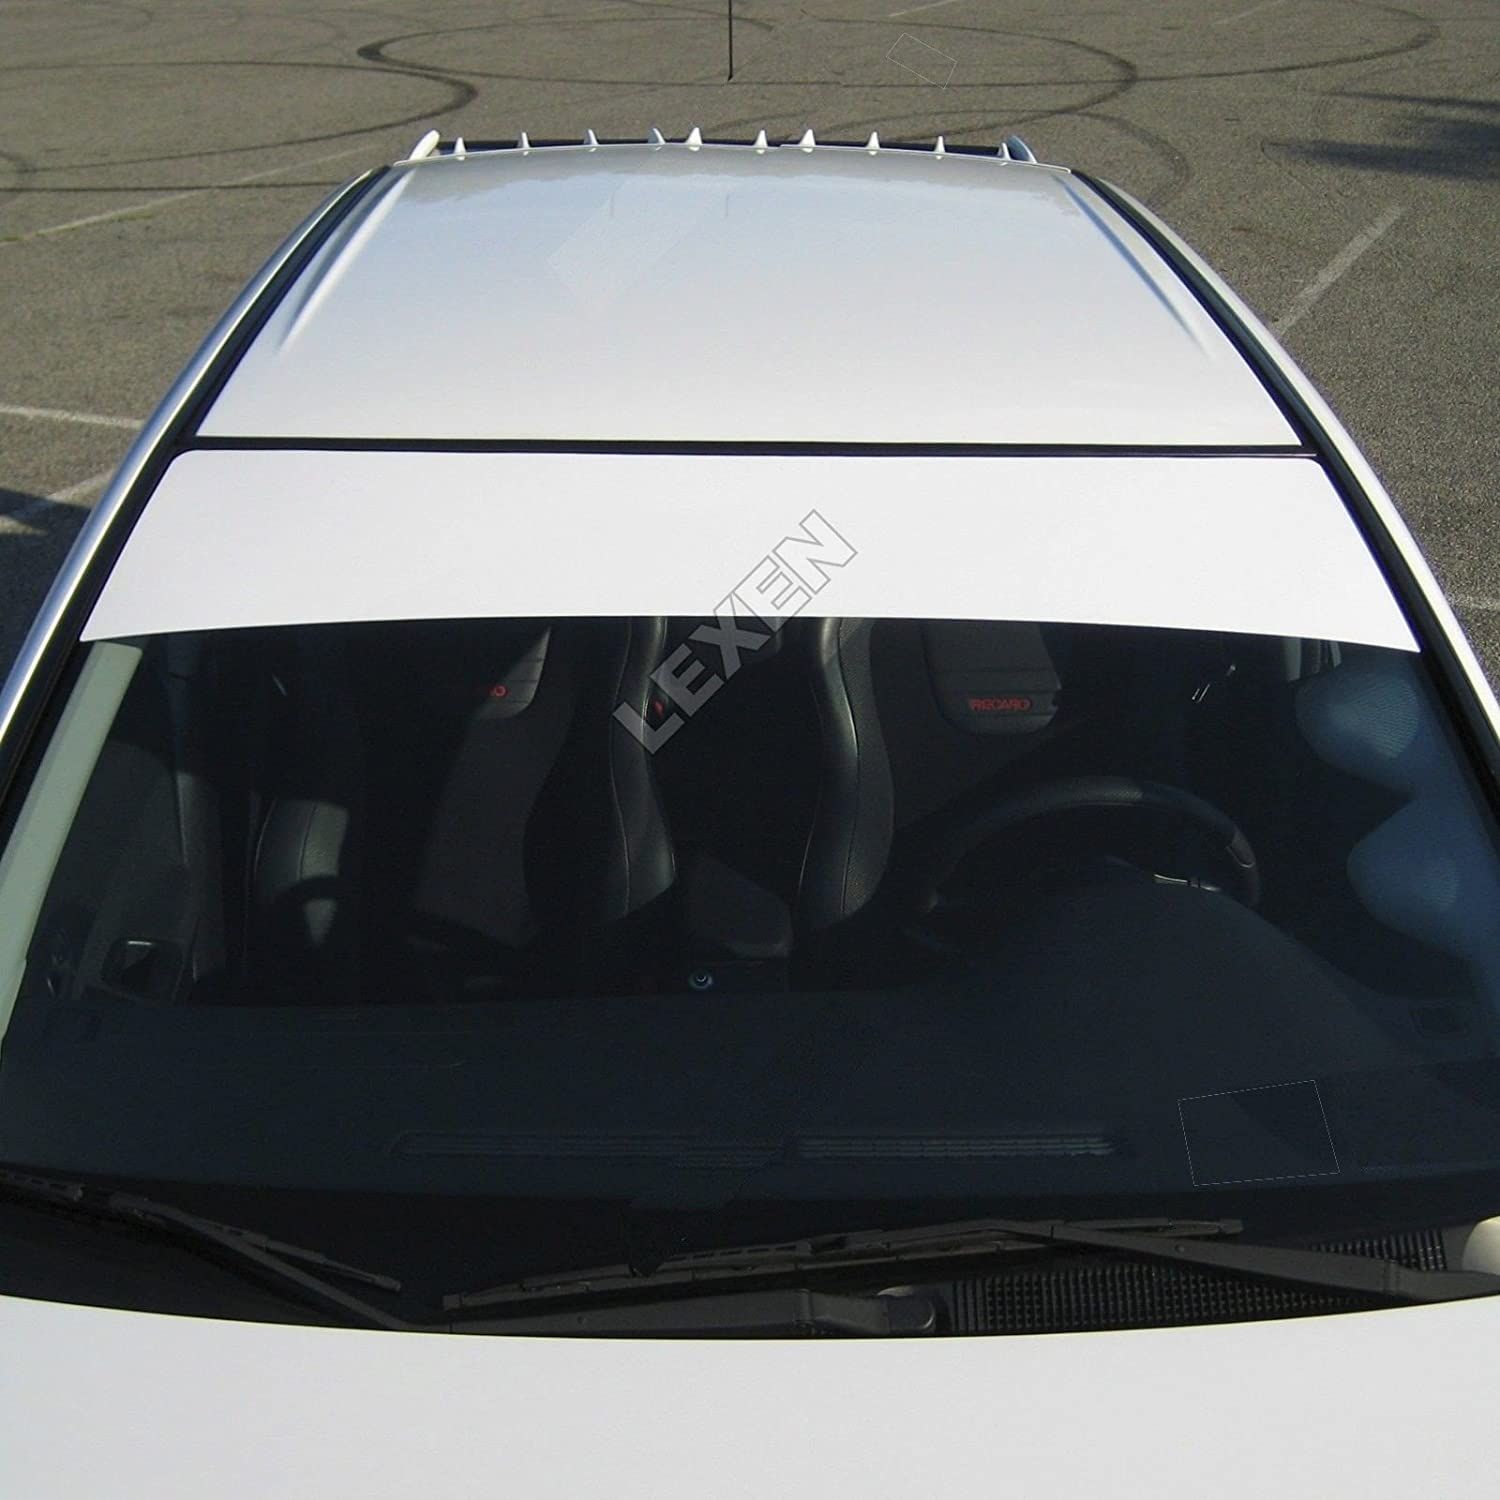 Seat WINDSHIELD CAR SCREEN SUNSTRIP sticker